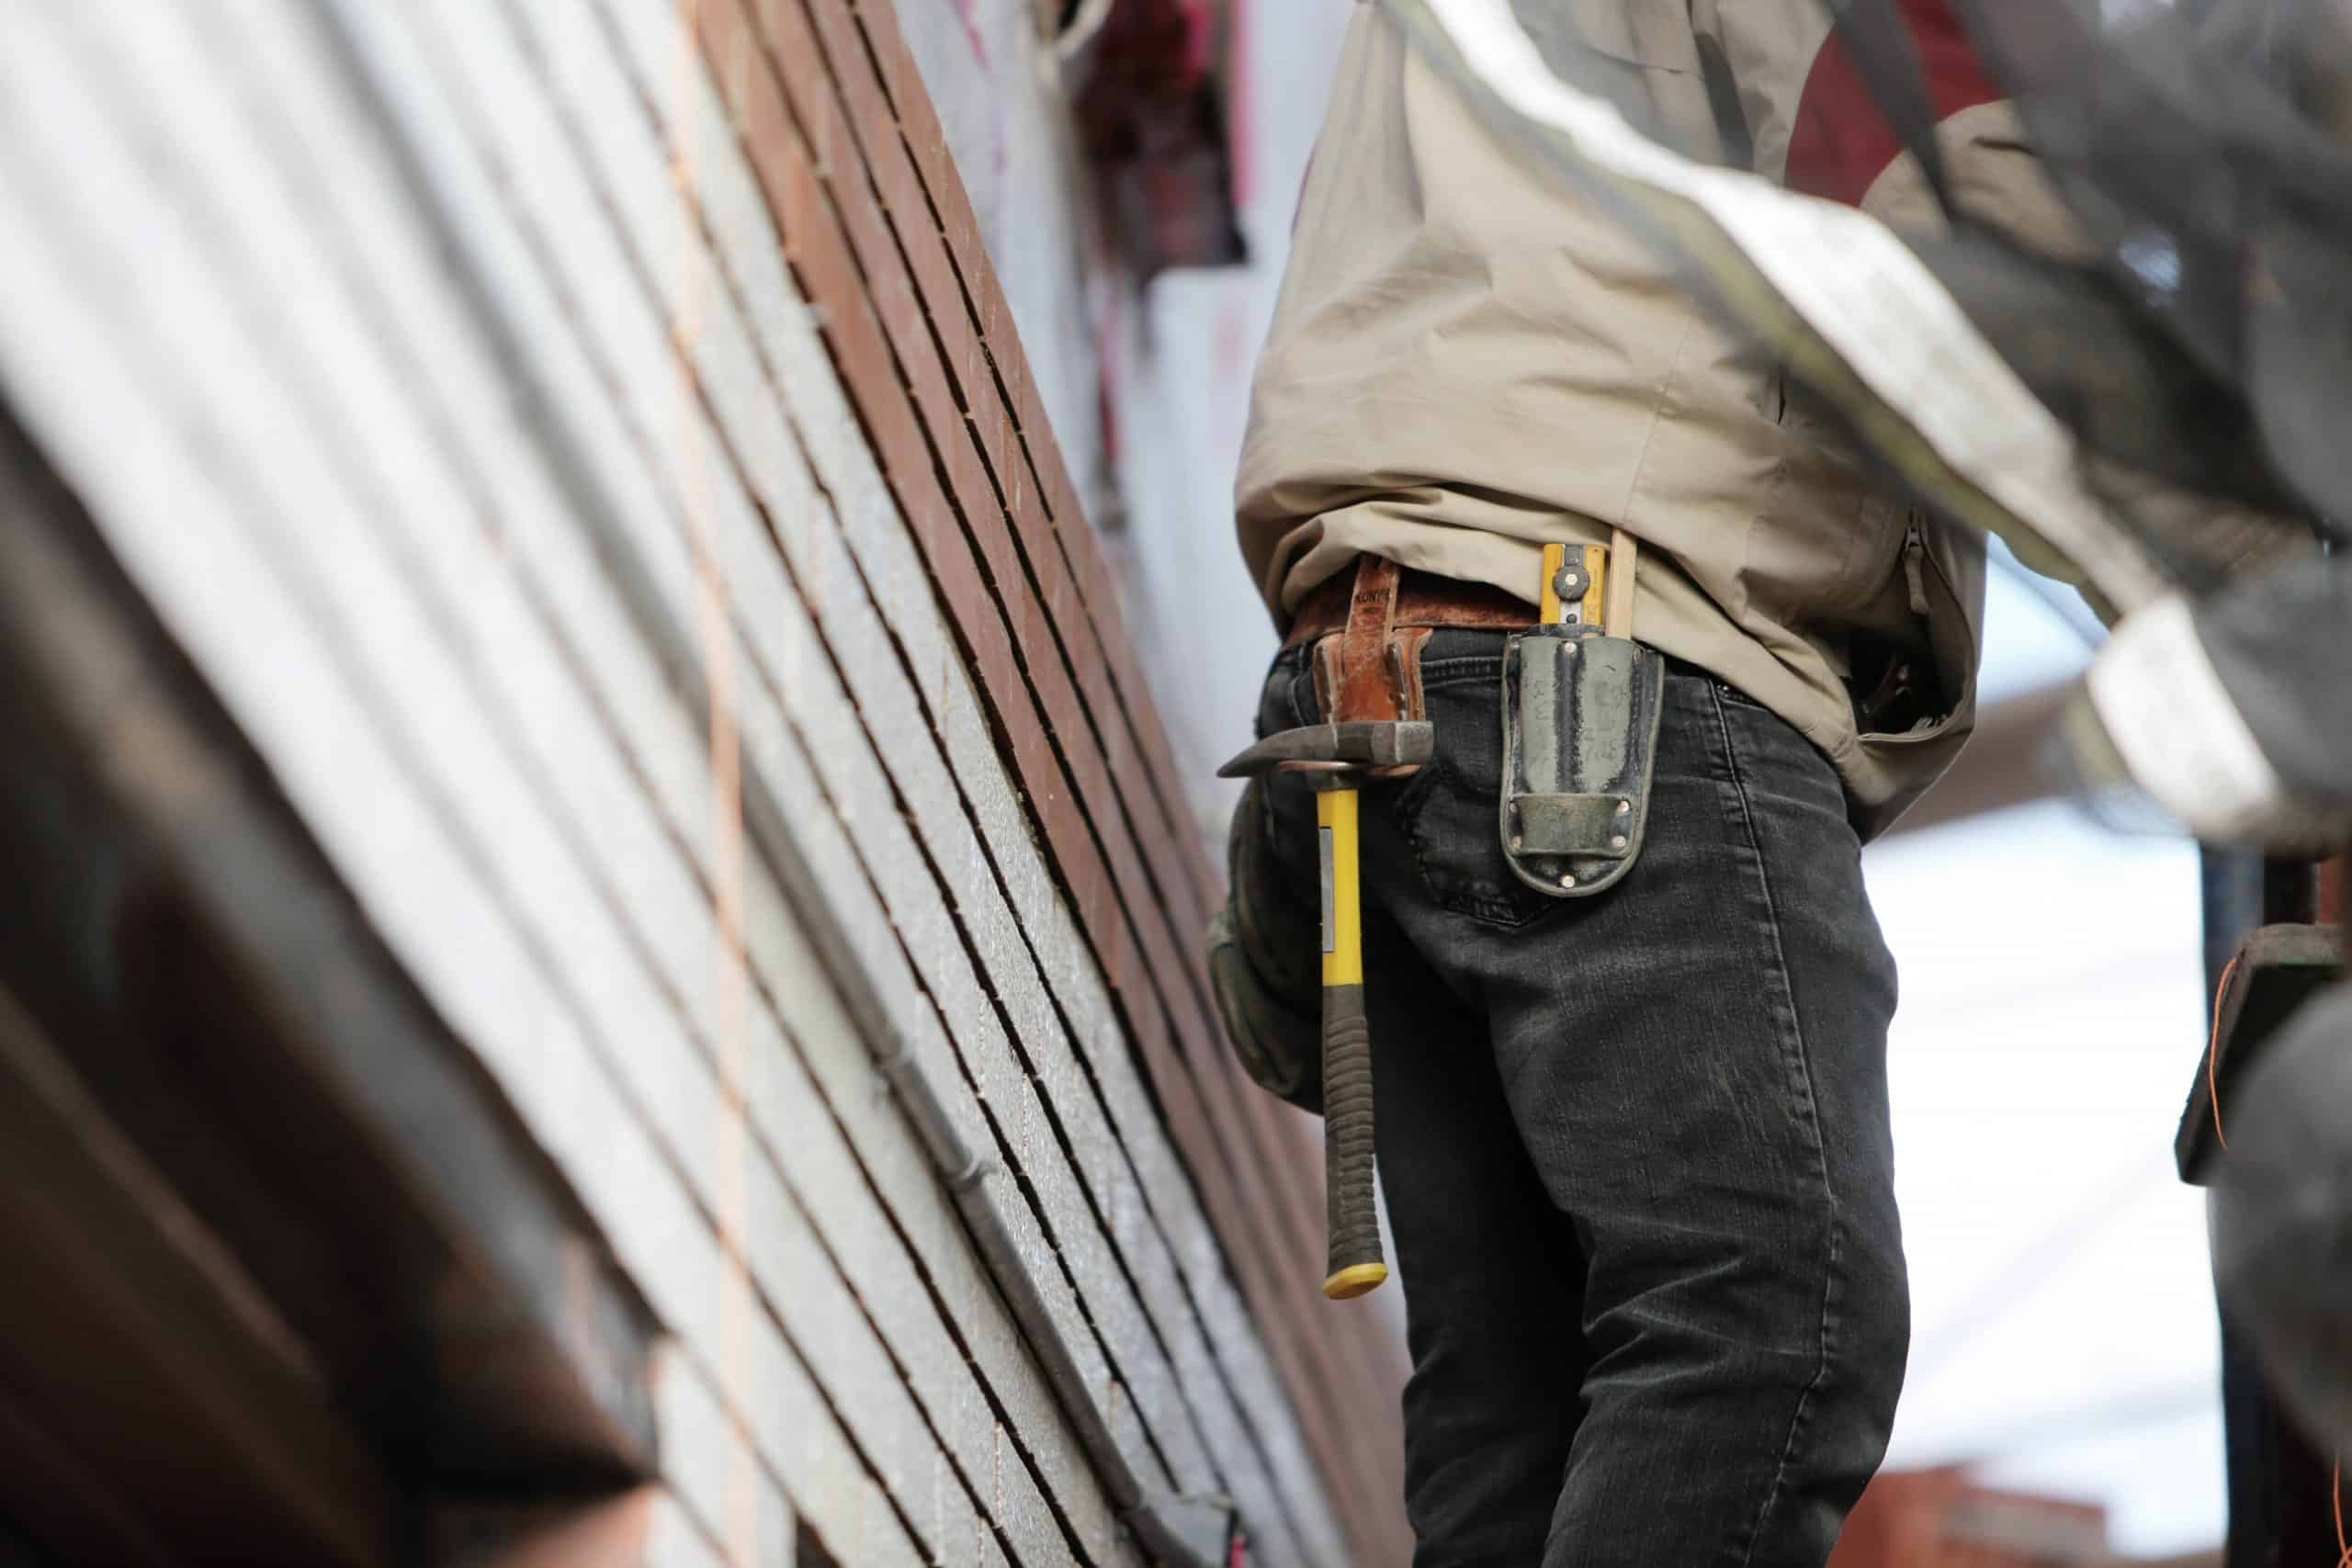 Uninsured vs Insured Contractors: What You Need to Know